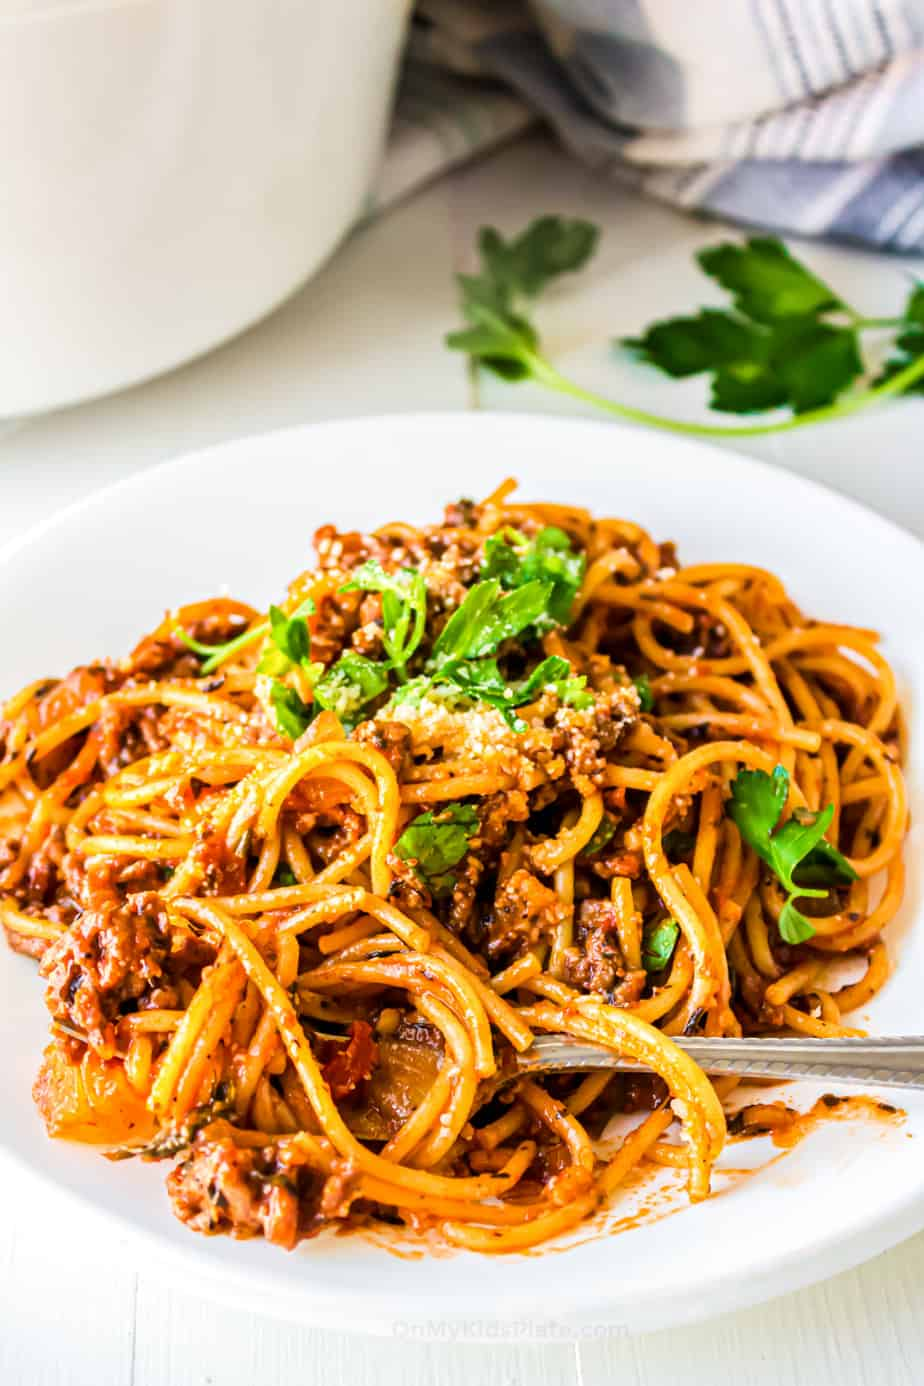 Spaghetti in a red sauce with ground turkey on a plate with a fork.